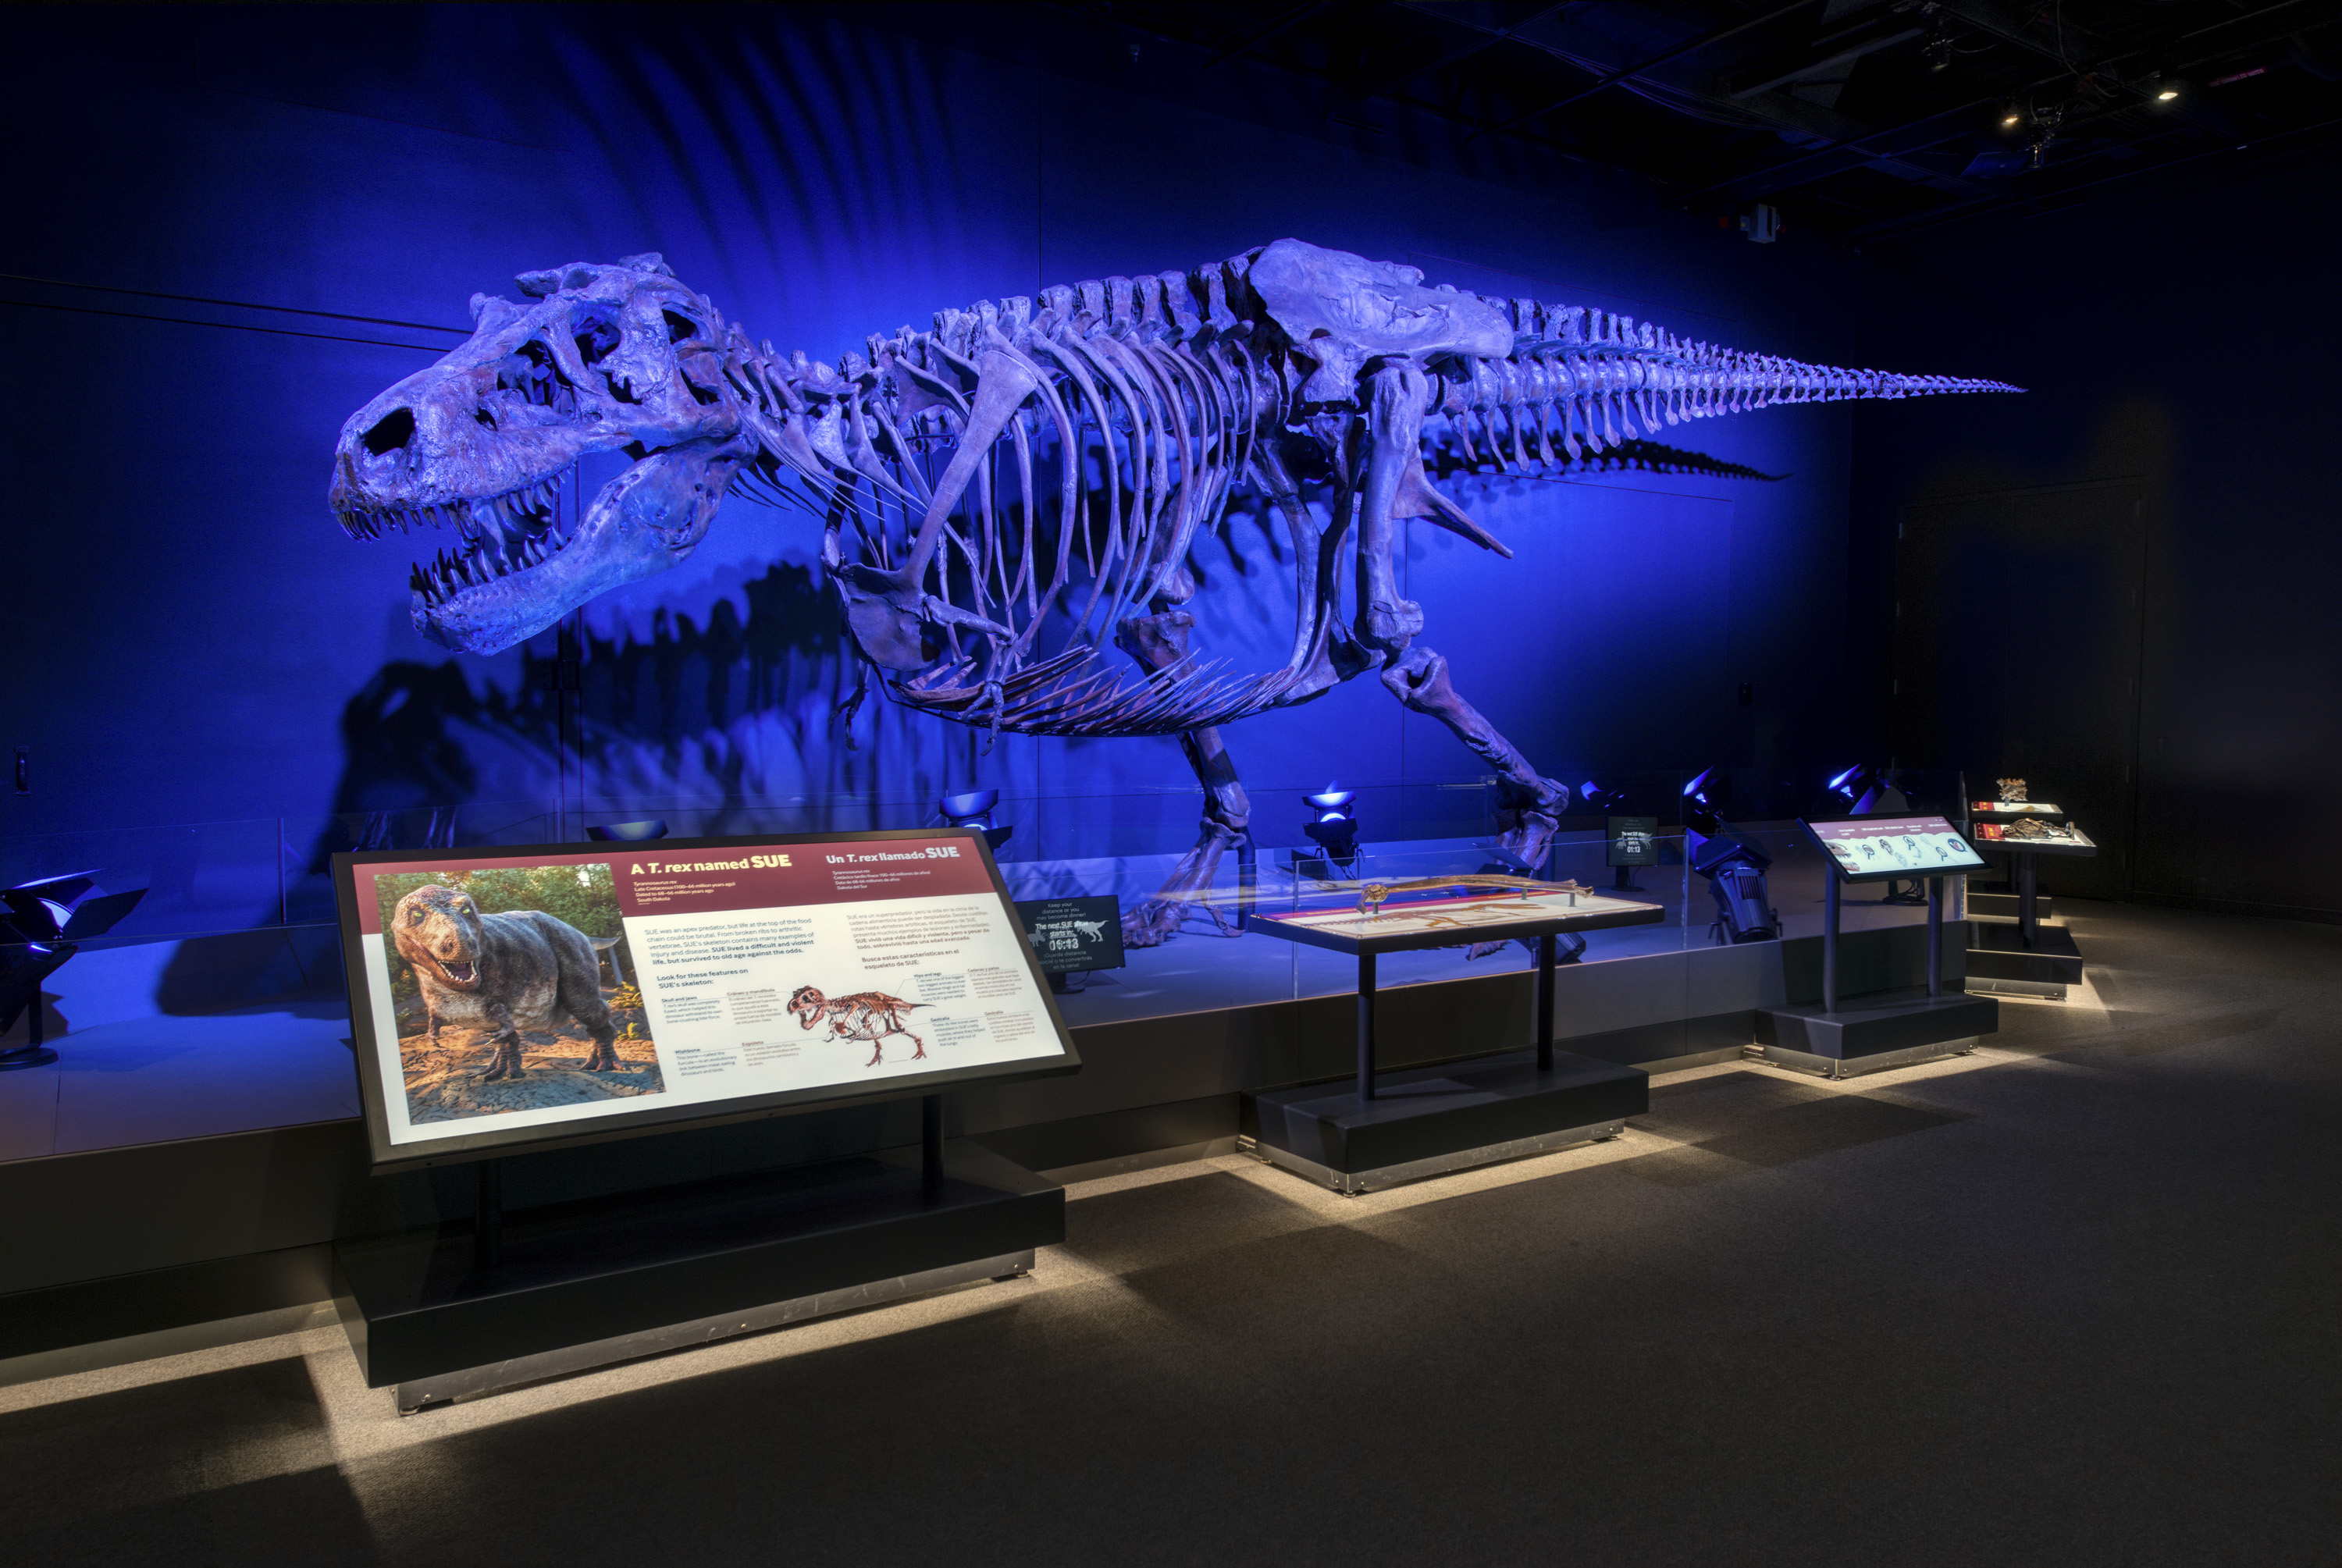 SUE the T. rex fossil skeleton with dramatic blue lighting.